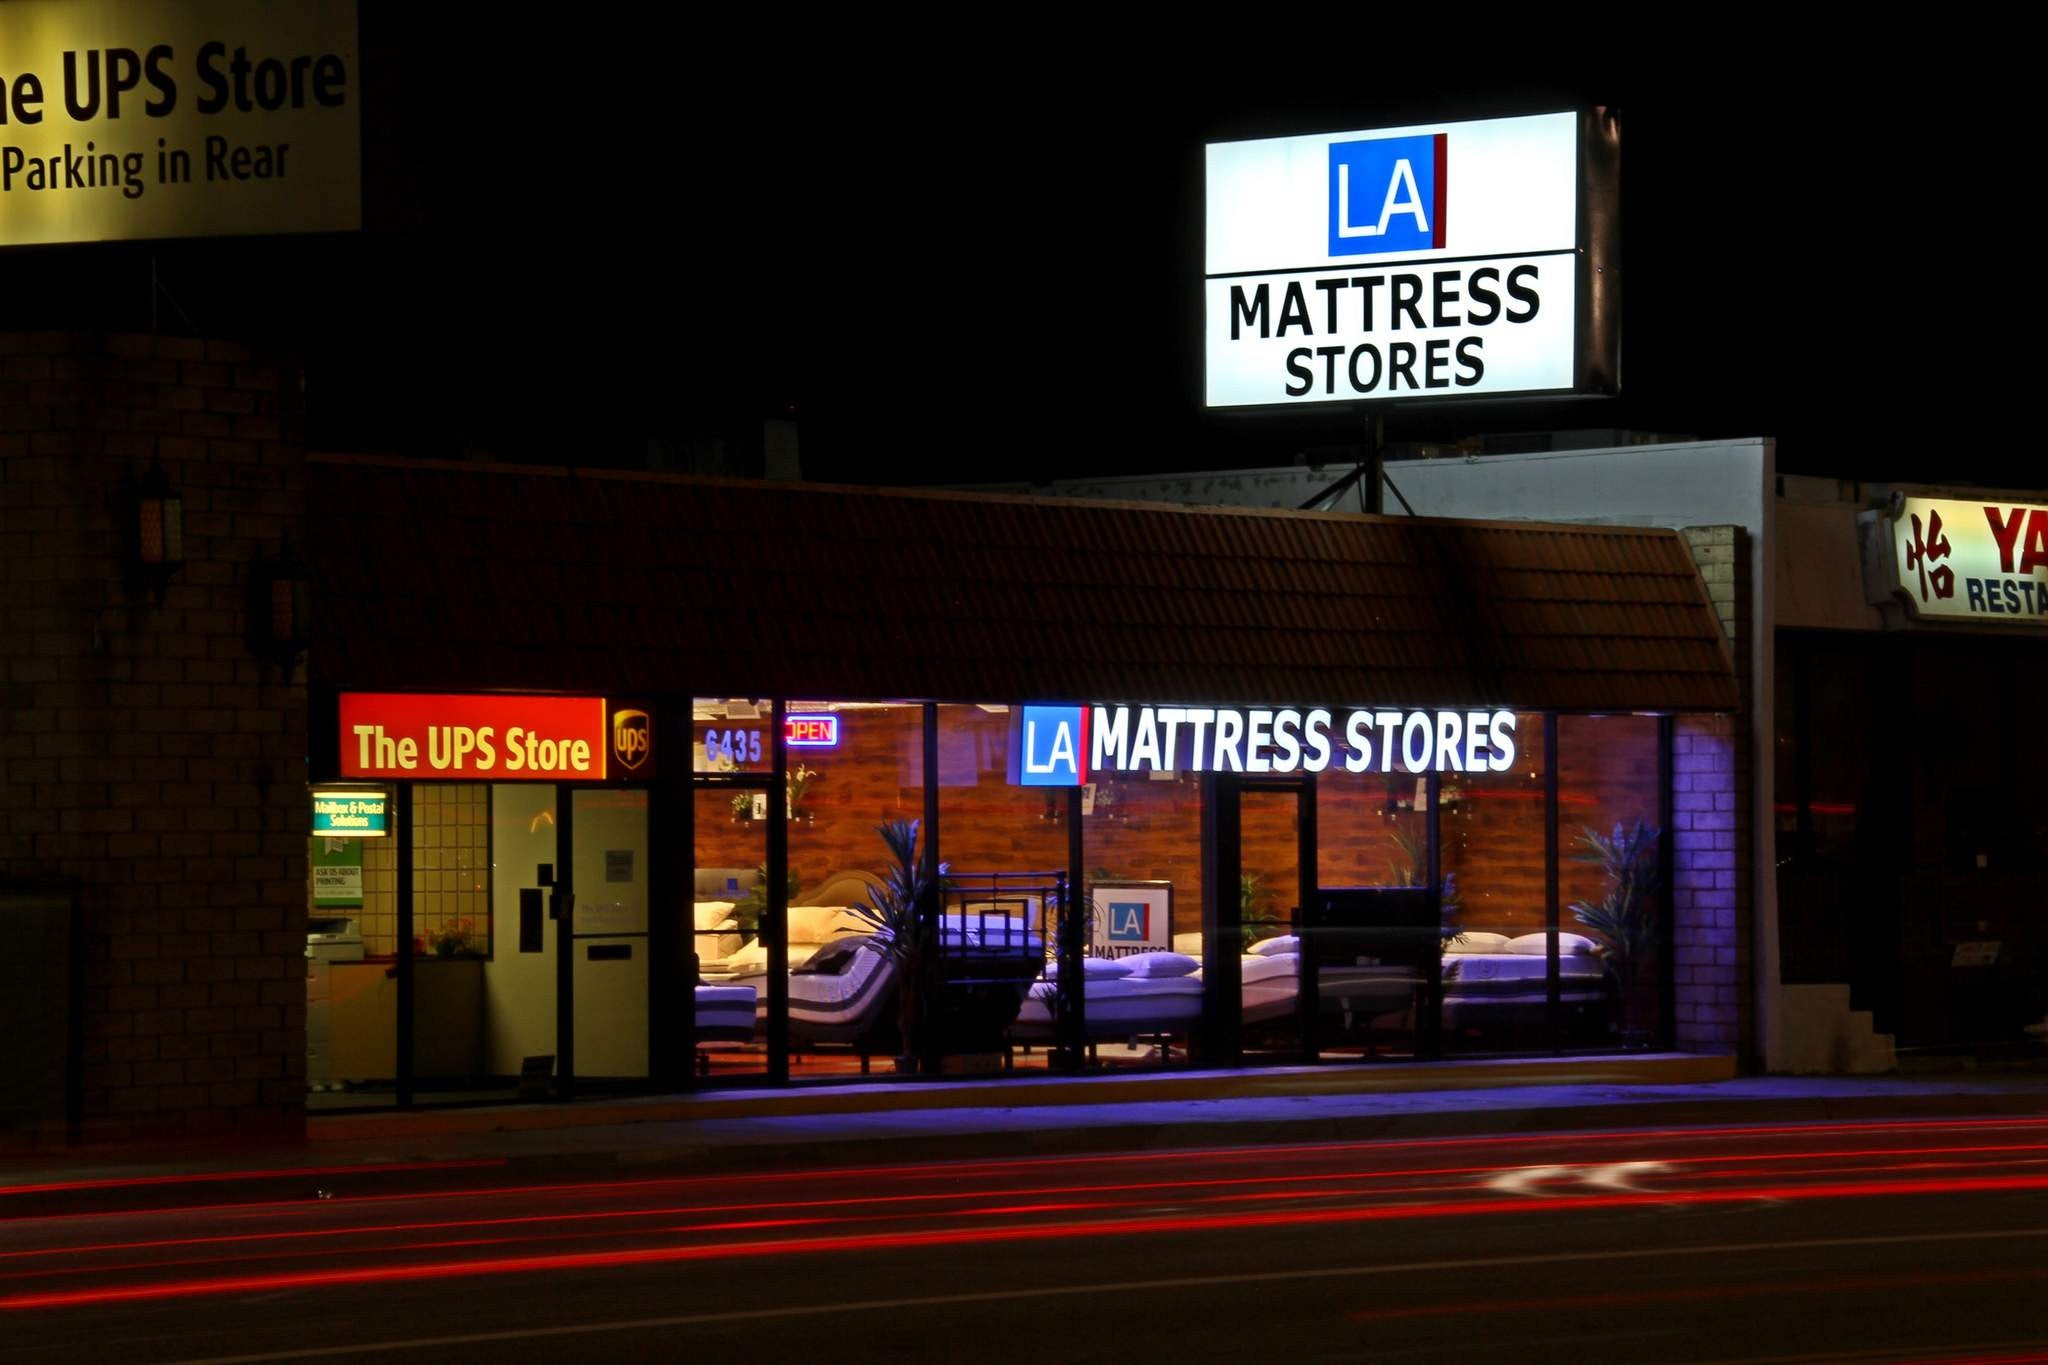 Los Angeles Mattress Stores at Topanga Canyon Woodland Hills